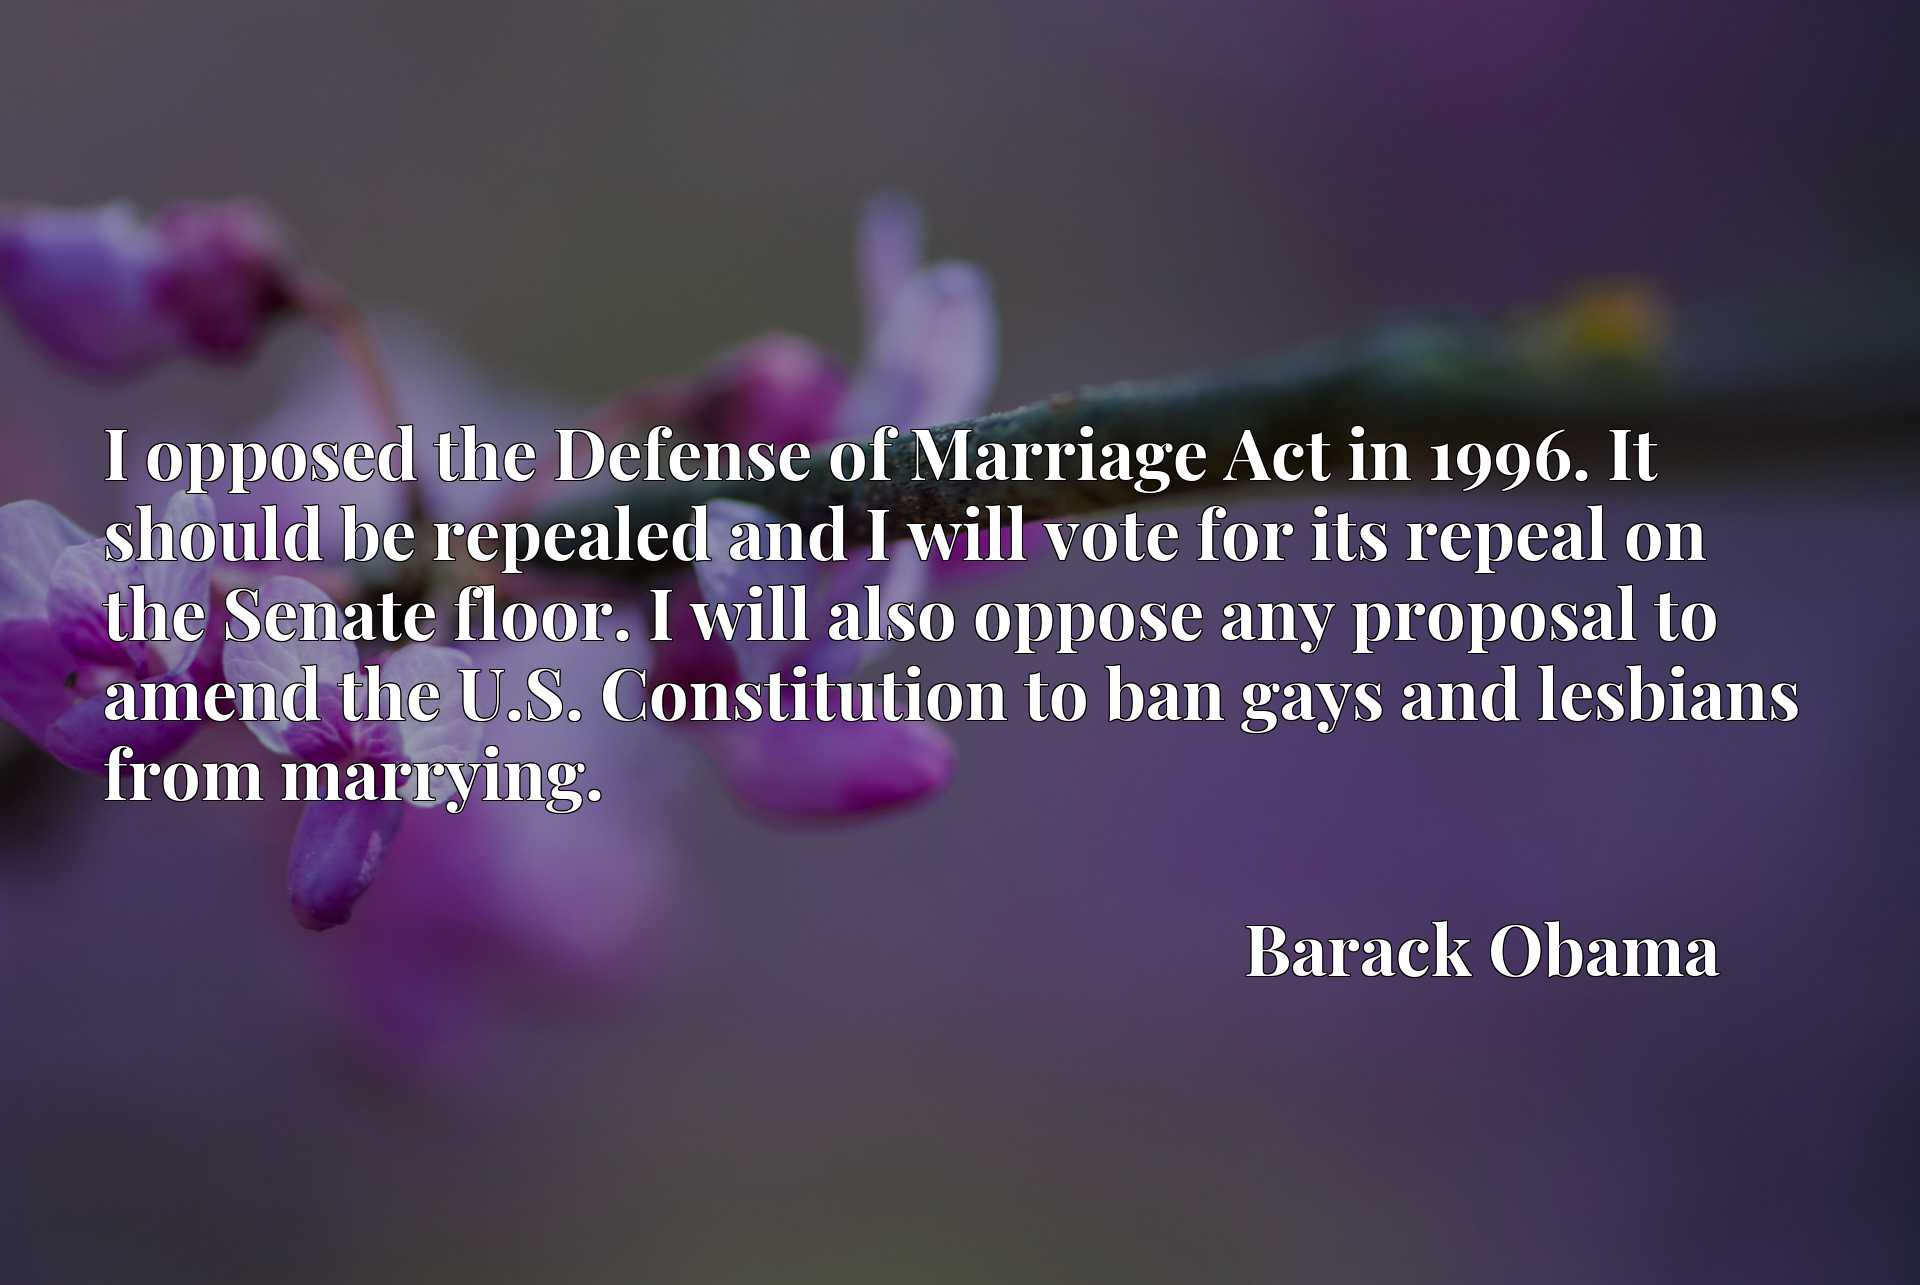 Quote Picture :I opposed the Defense of Marriage Act in 1996. It should be repealed and I will vote for its repeal on the Senate floor. I will also oppose any proposal to amend the U.S. Constitution to ban gays and lesbians from marrying.